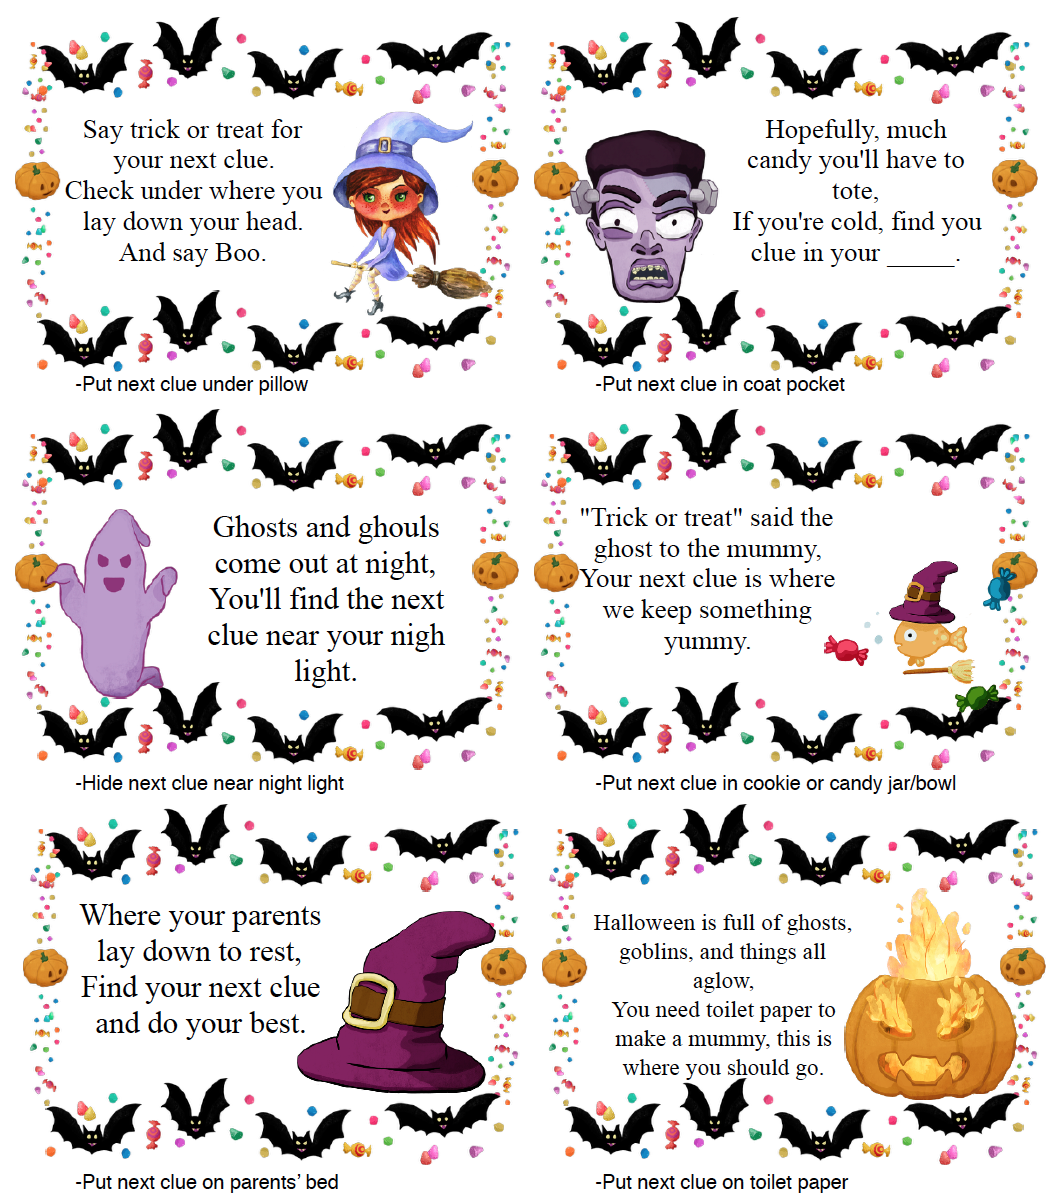 Page 4 of clues for free printable Halloween treasure hunt.